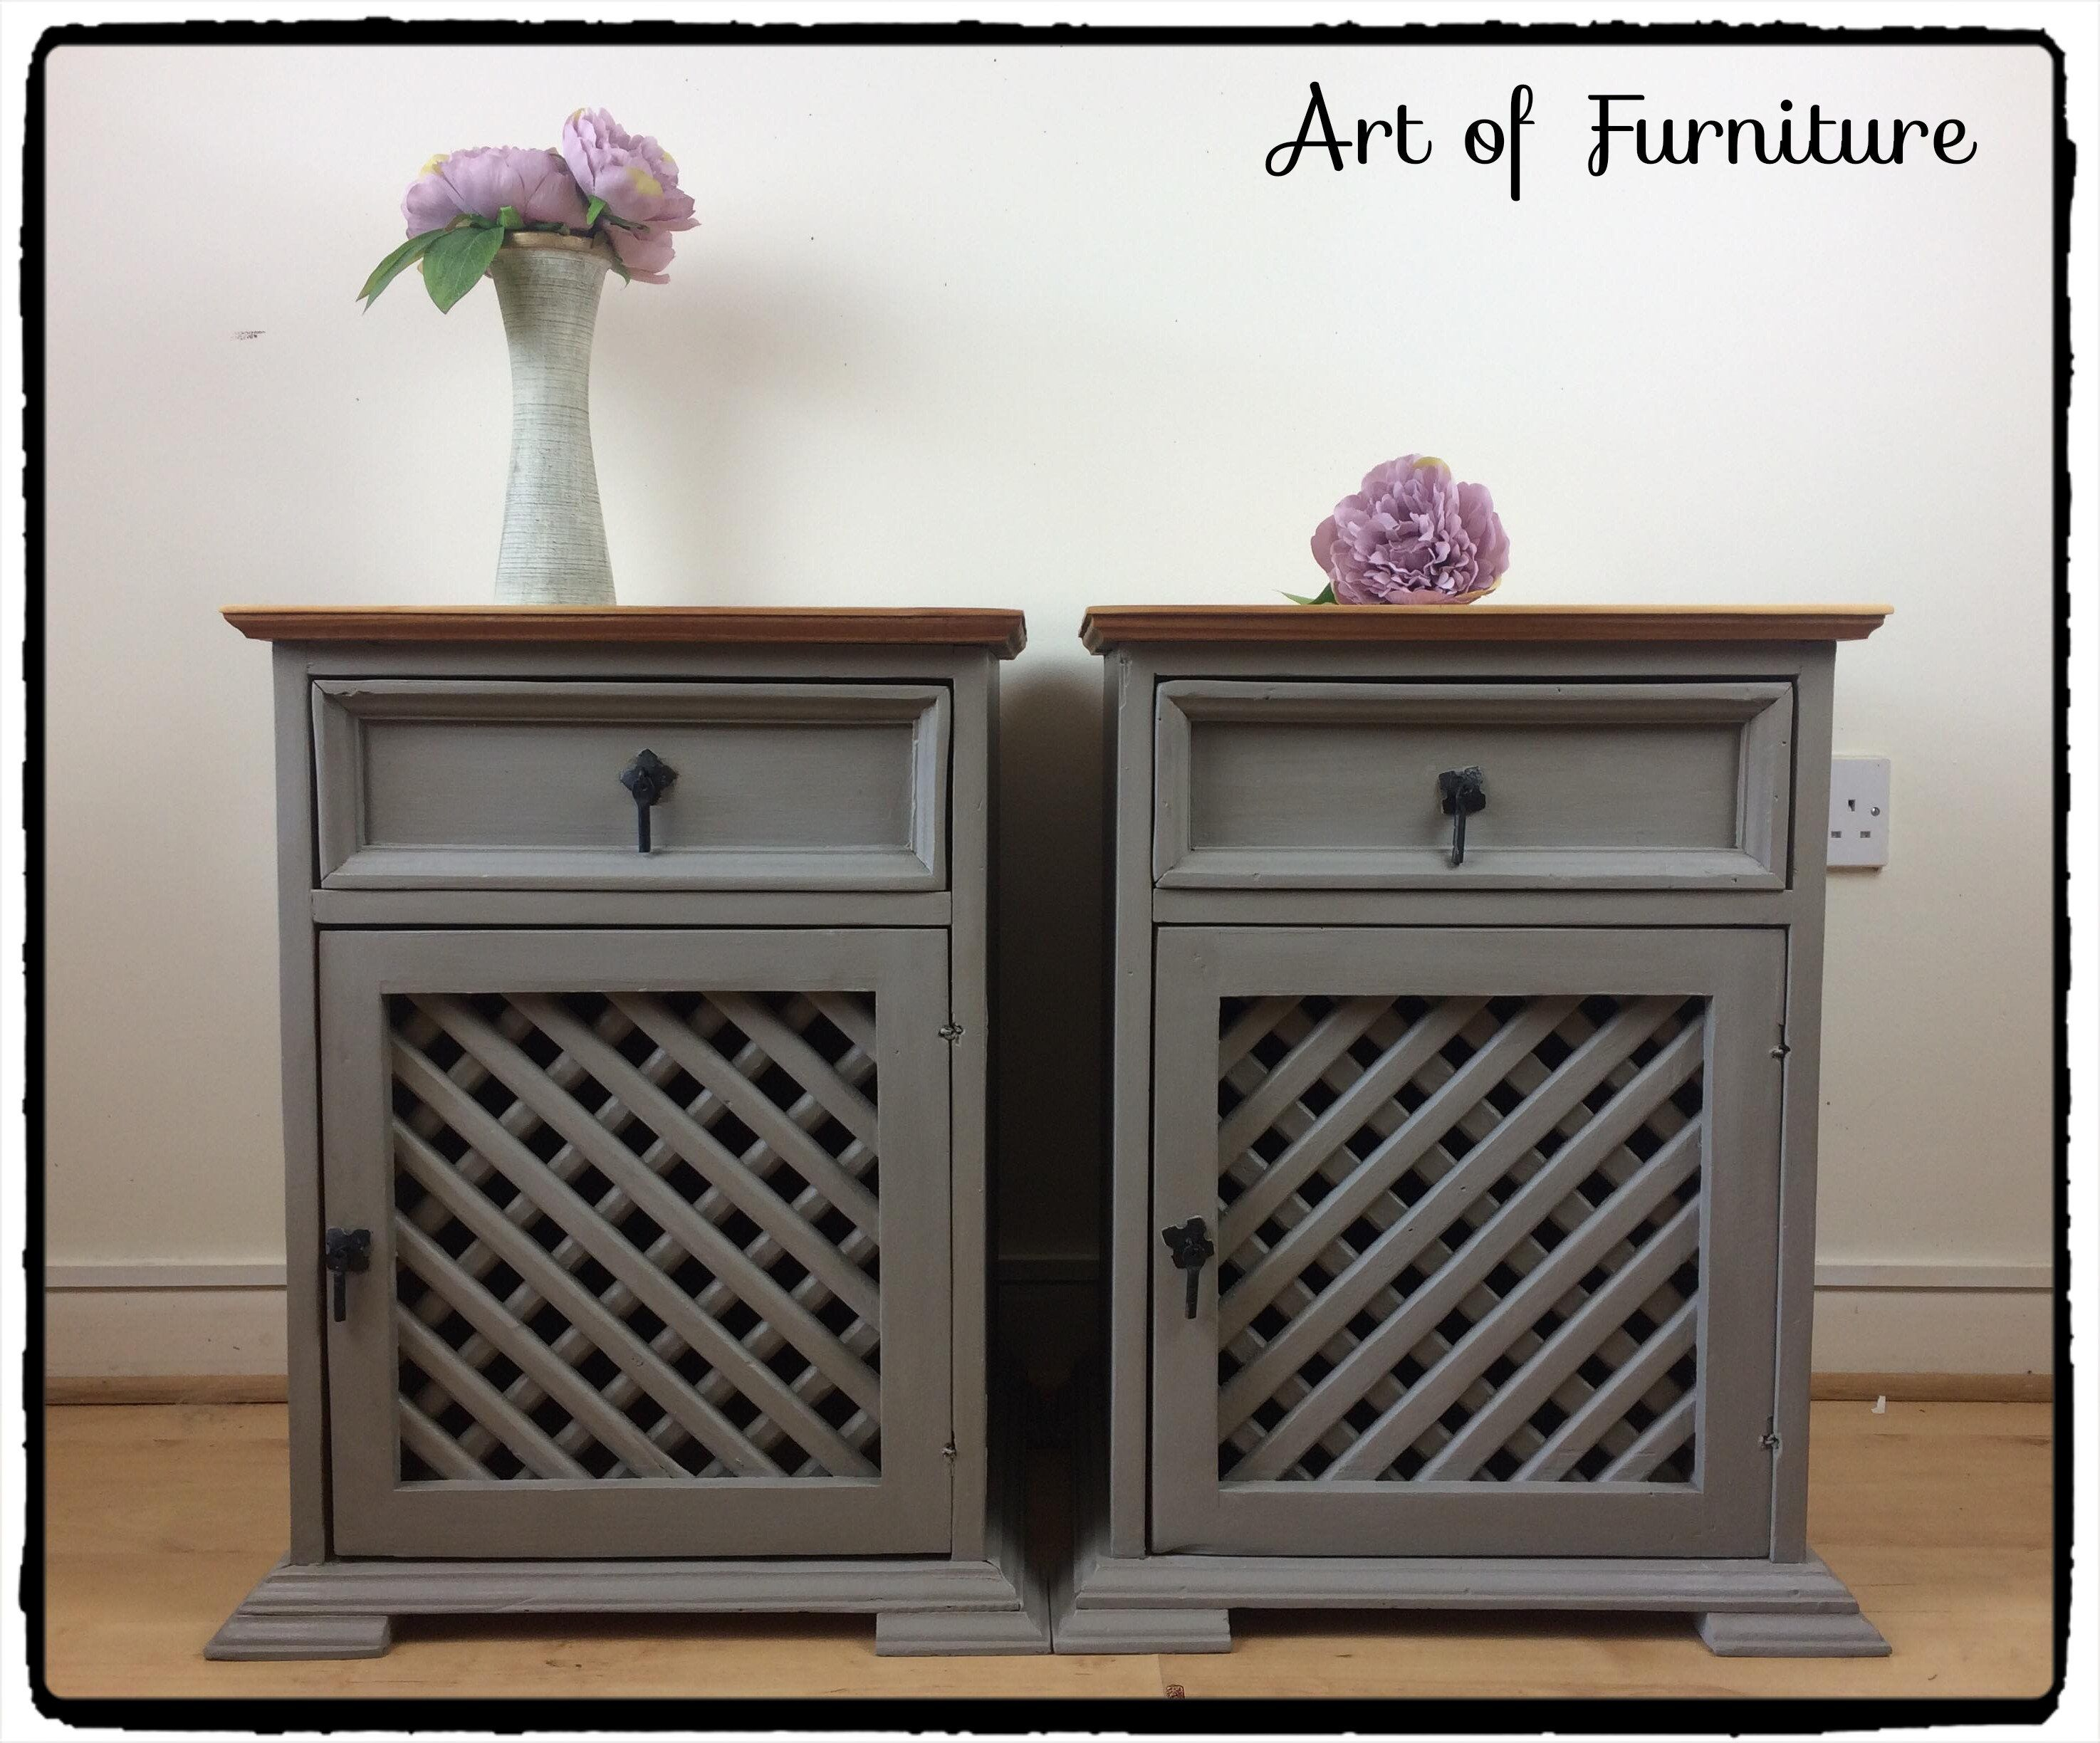 A Pair Of Mexican Rustic Pine Bedside Tables Cabinets Hand Painted In Annie Sloan French Linen Chalk Paint Bedroom Furniture Upcycled By Artoffurniture0205